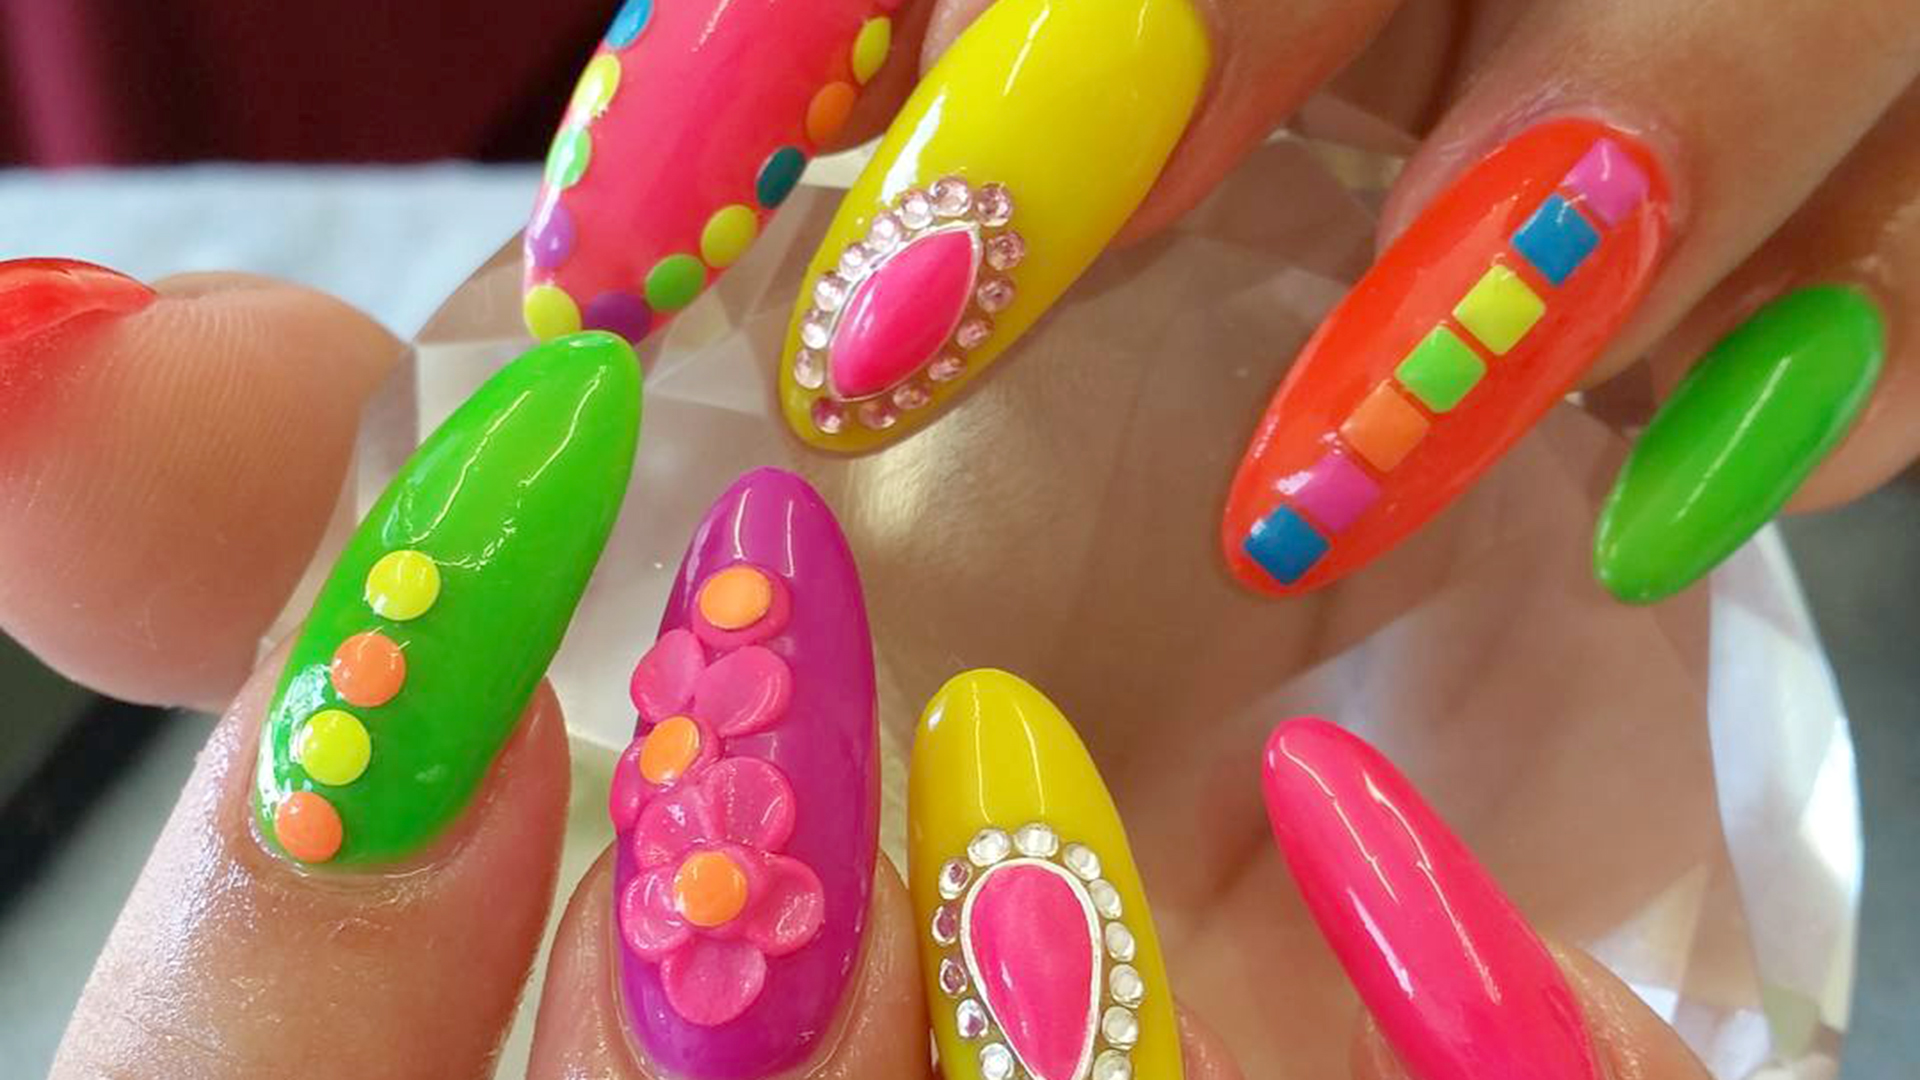 Beyond bubble nails, 5 crazy manicure trends happening now